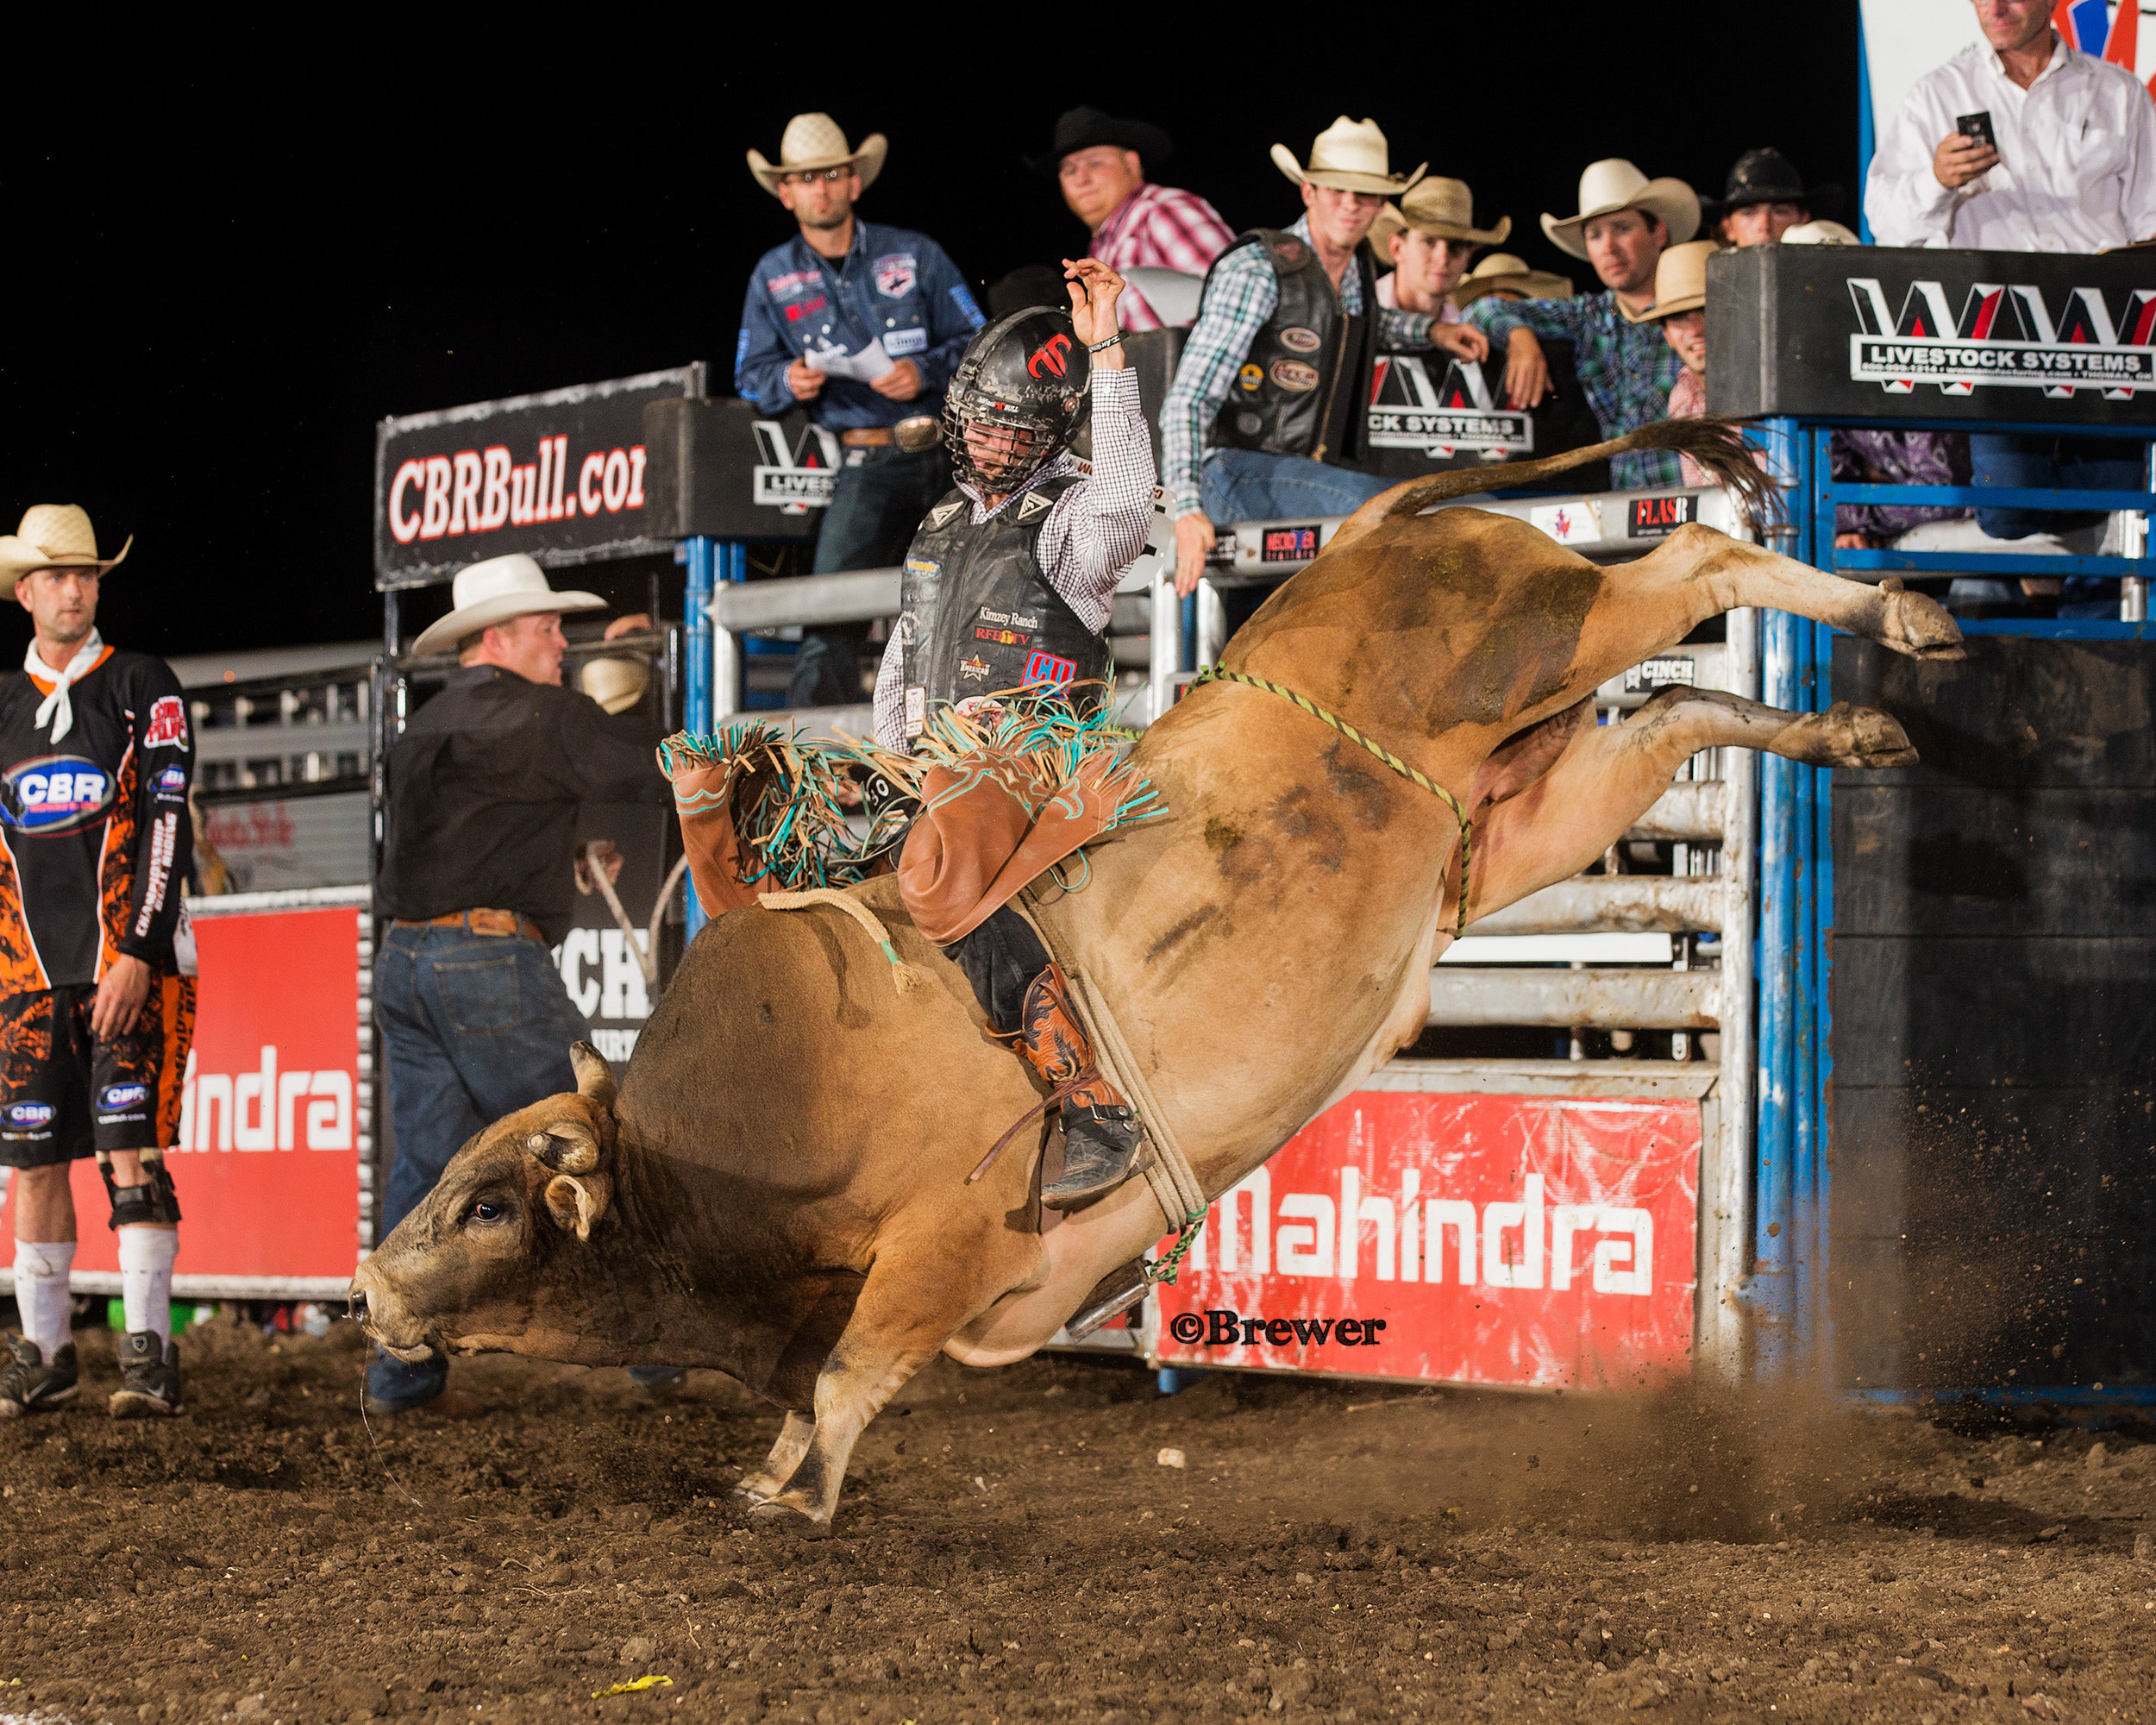 5-time PRCA World Champion Bull Rider, Sage Kimzey was the 2015 Red Wilk Champ. Photographed on Jeff Harris' Shorty.